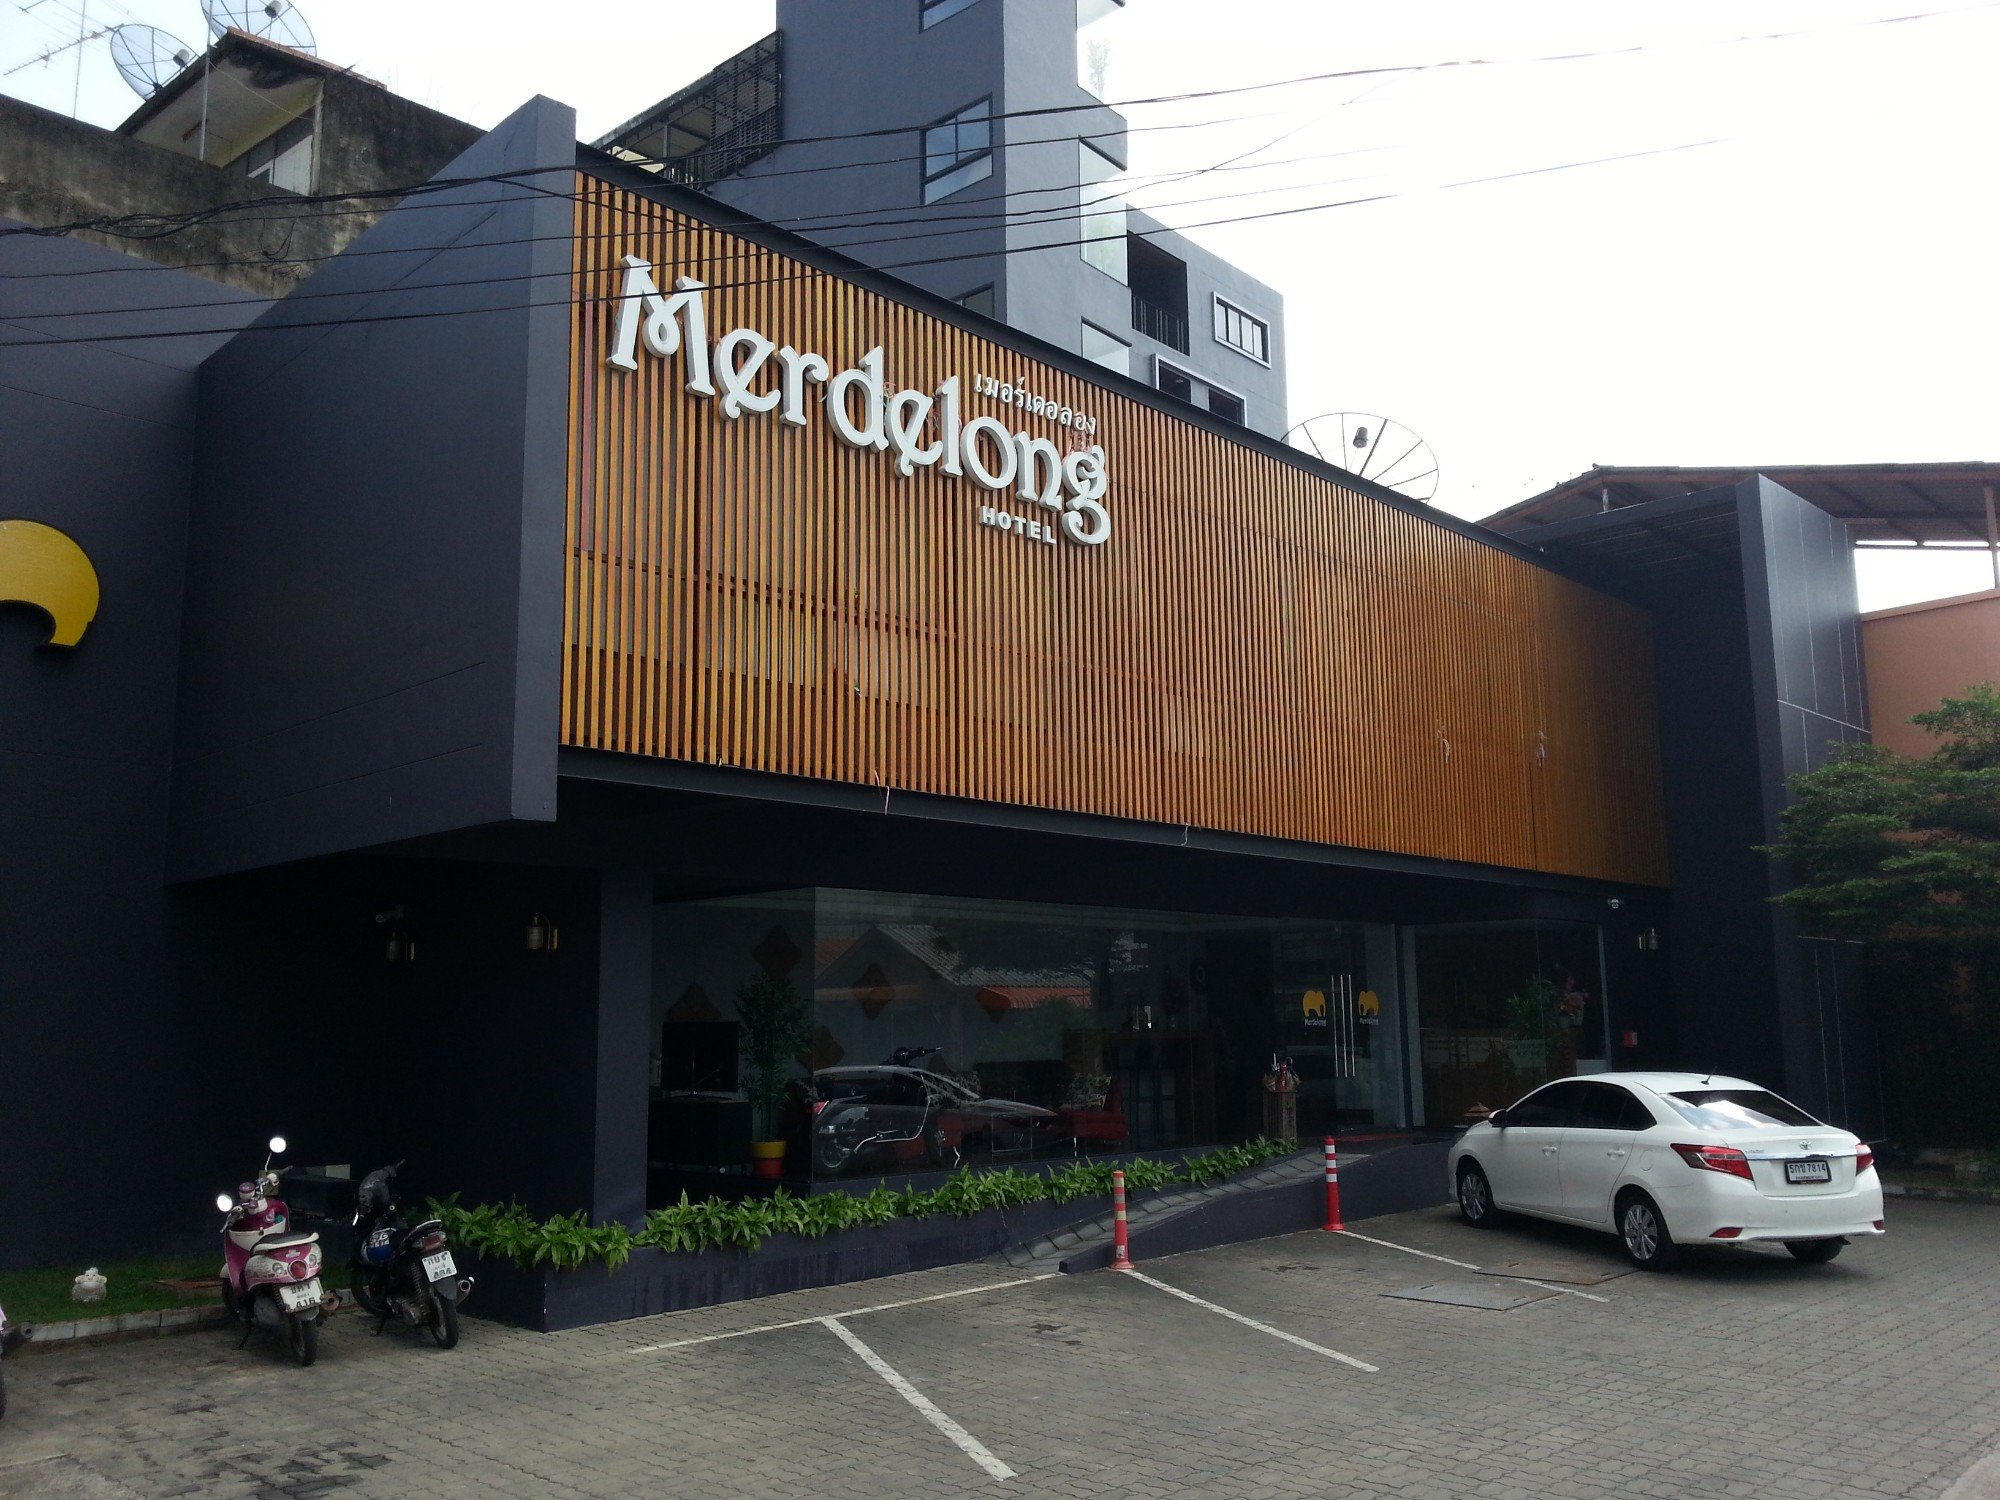 Merdelong Hotel in Phatthalung